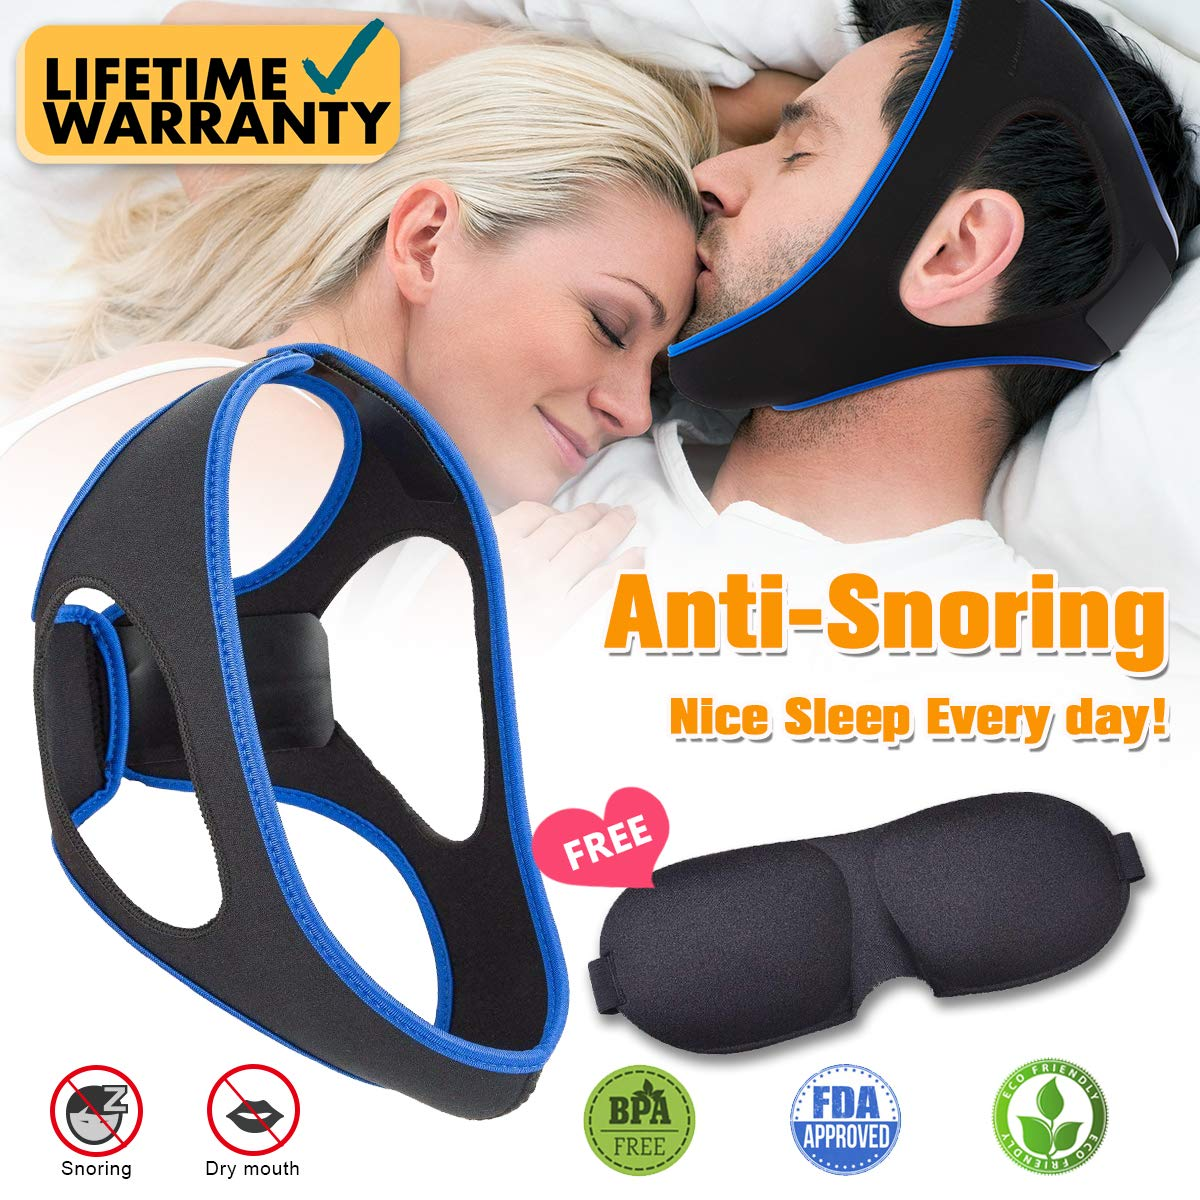 Sleep Masks Anti Snoring Chin Strap for Men and Women, Ajustable Stop Snoring Solution Anti Snoring Devices-W9 (Anti Snoring1) by Copeaky